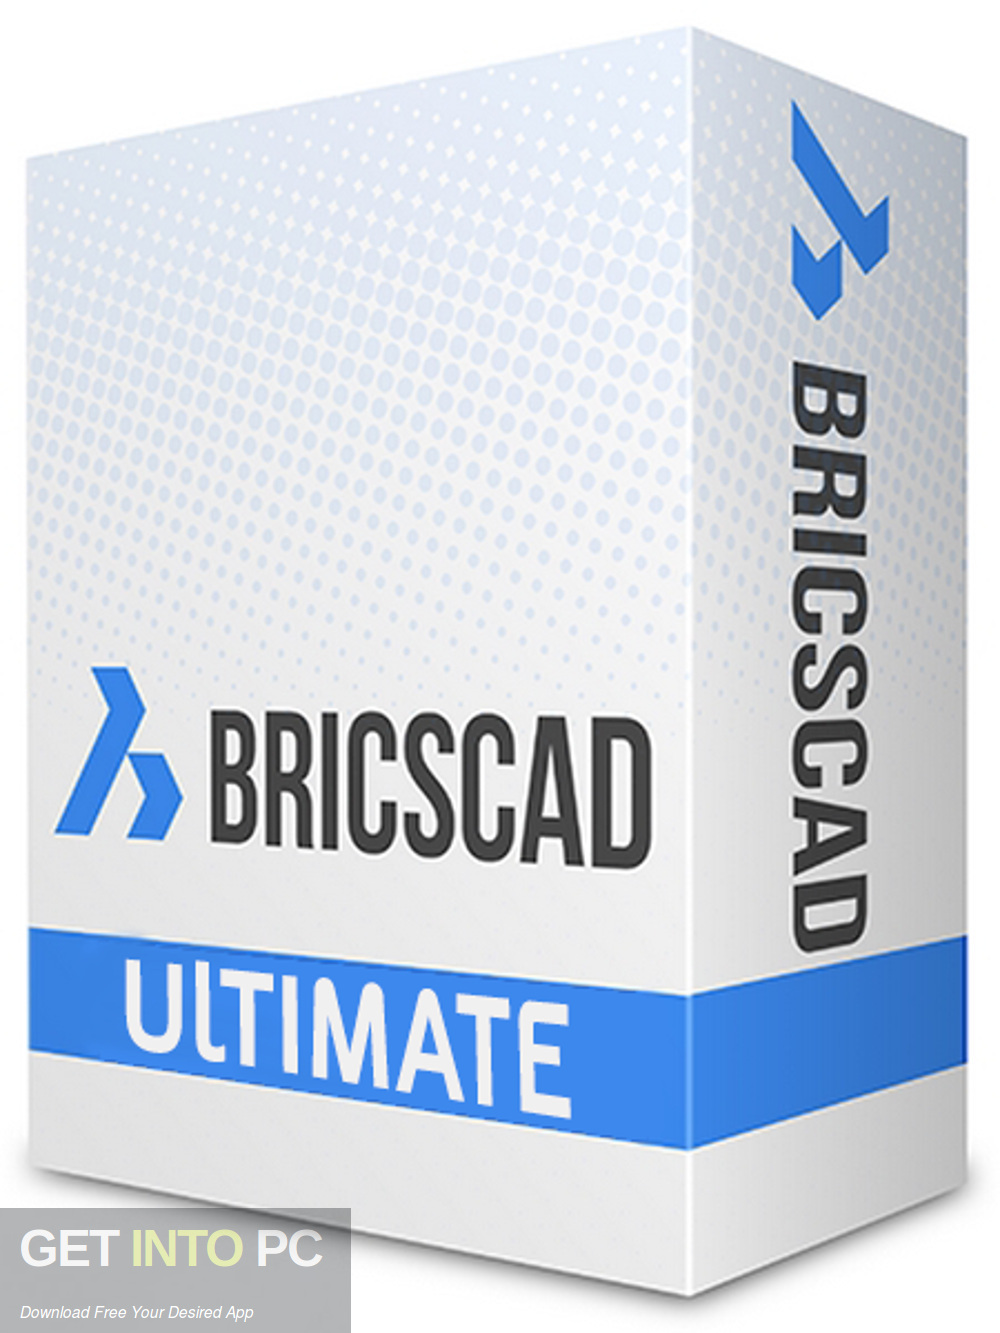 BricsCad Ultimate Free Download-GetintoPC.com